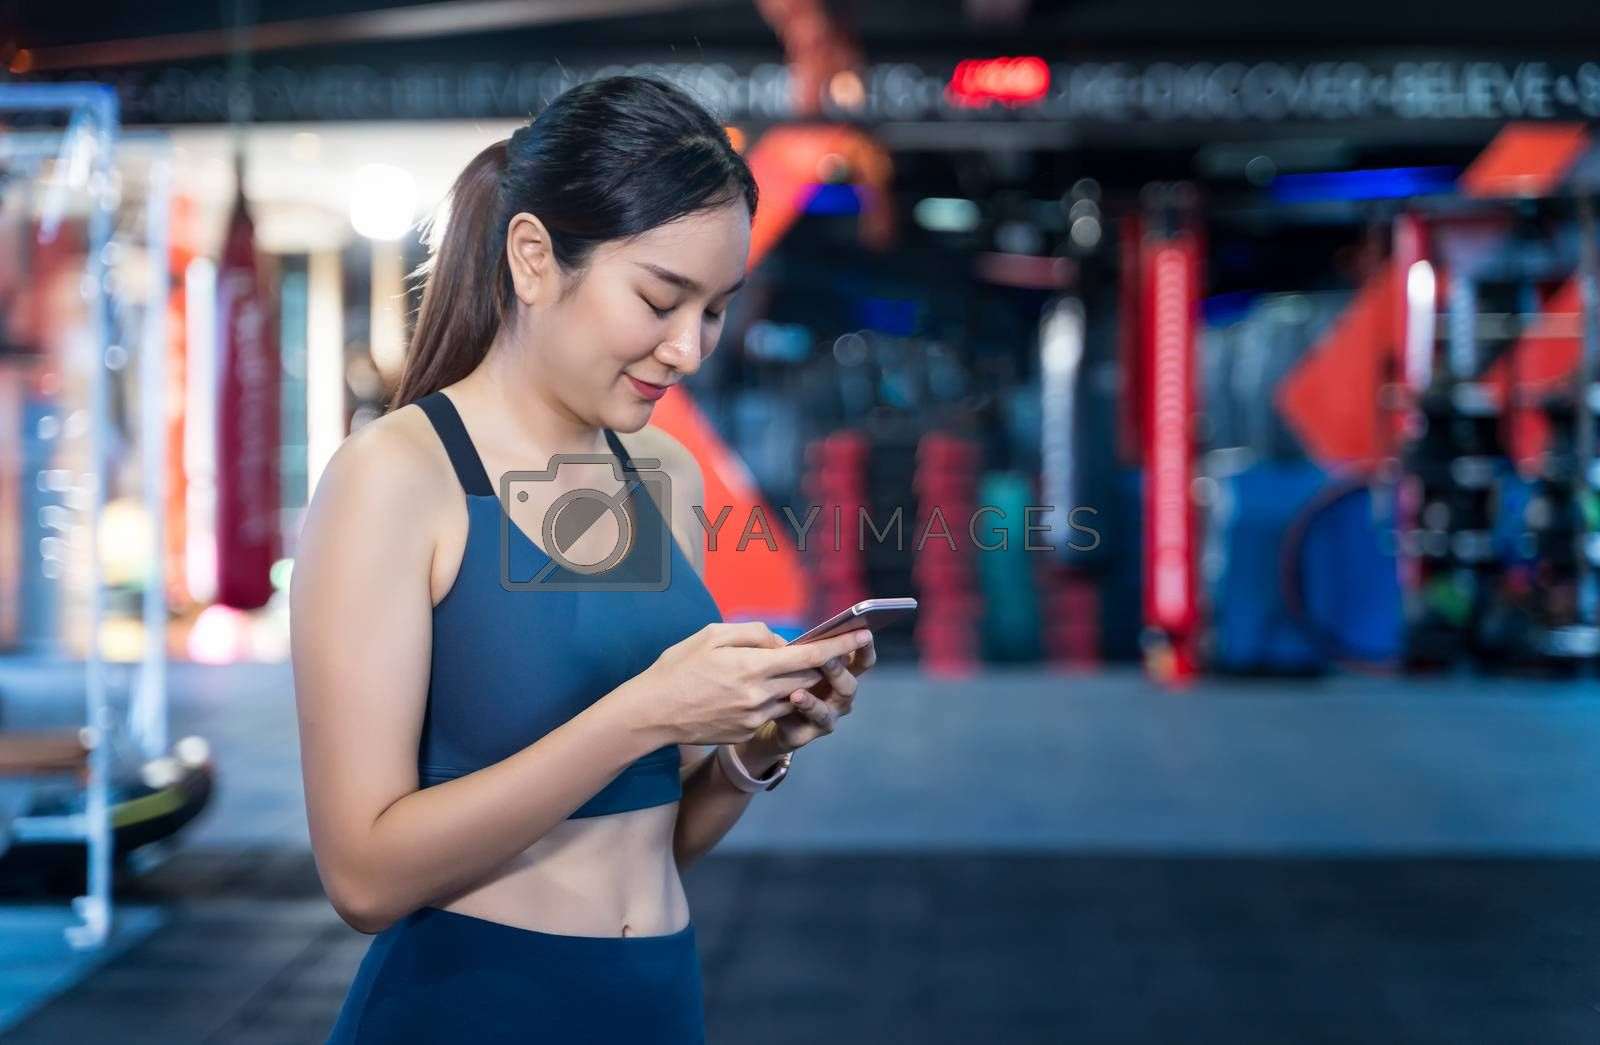 Asian Women are using mobile phones during exercise. She's standing, typing messages or chatting and smiling happily while staying during workouts with blur gym background and copy space